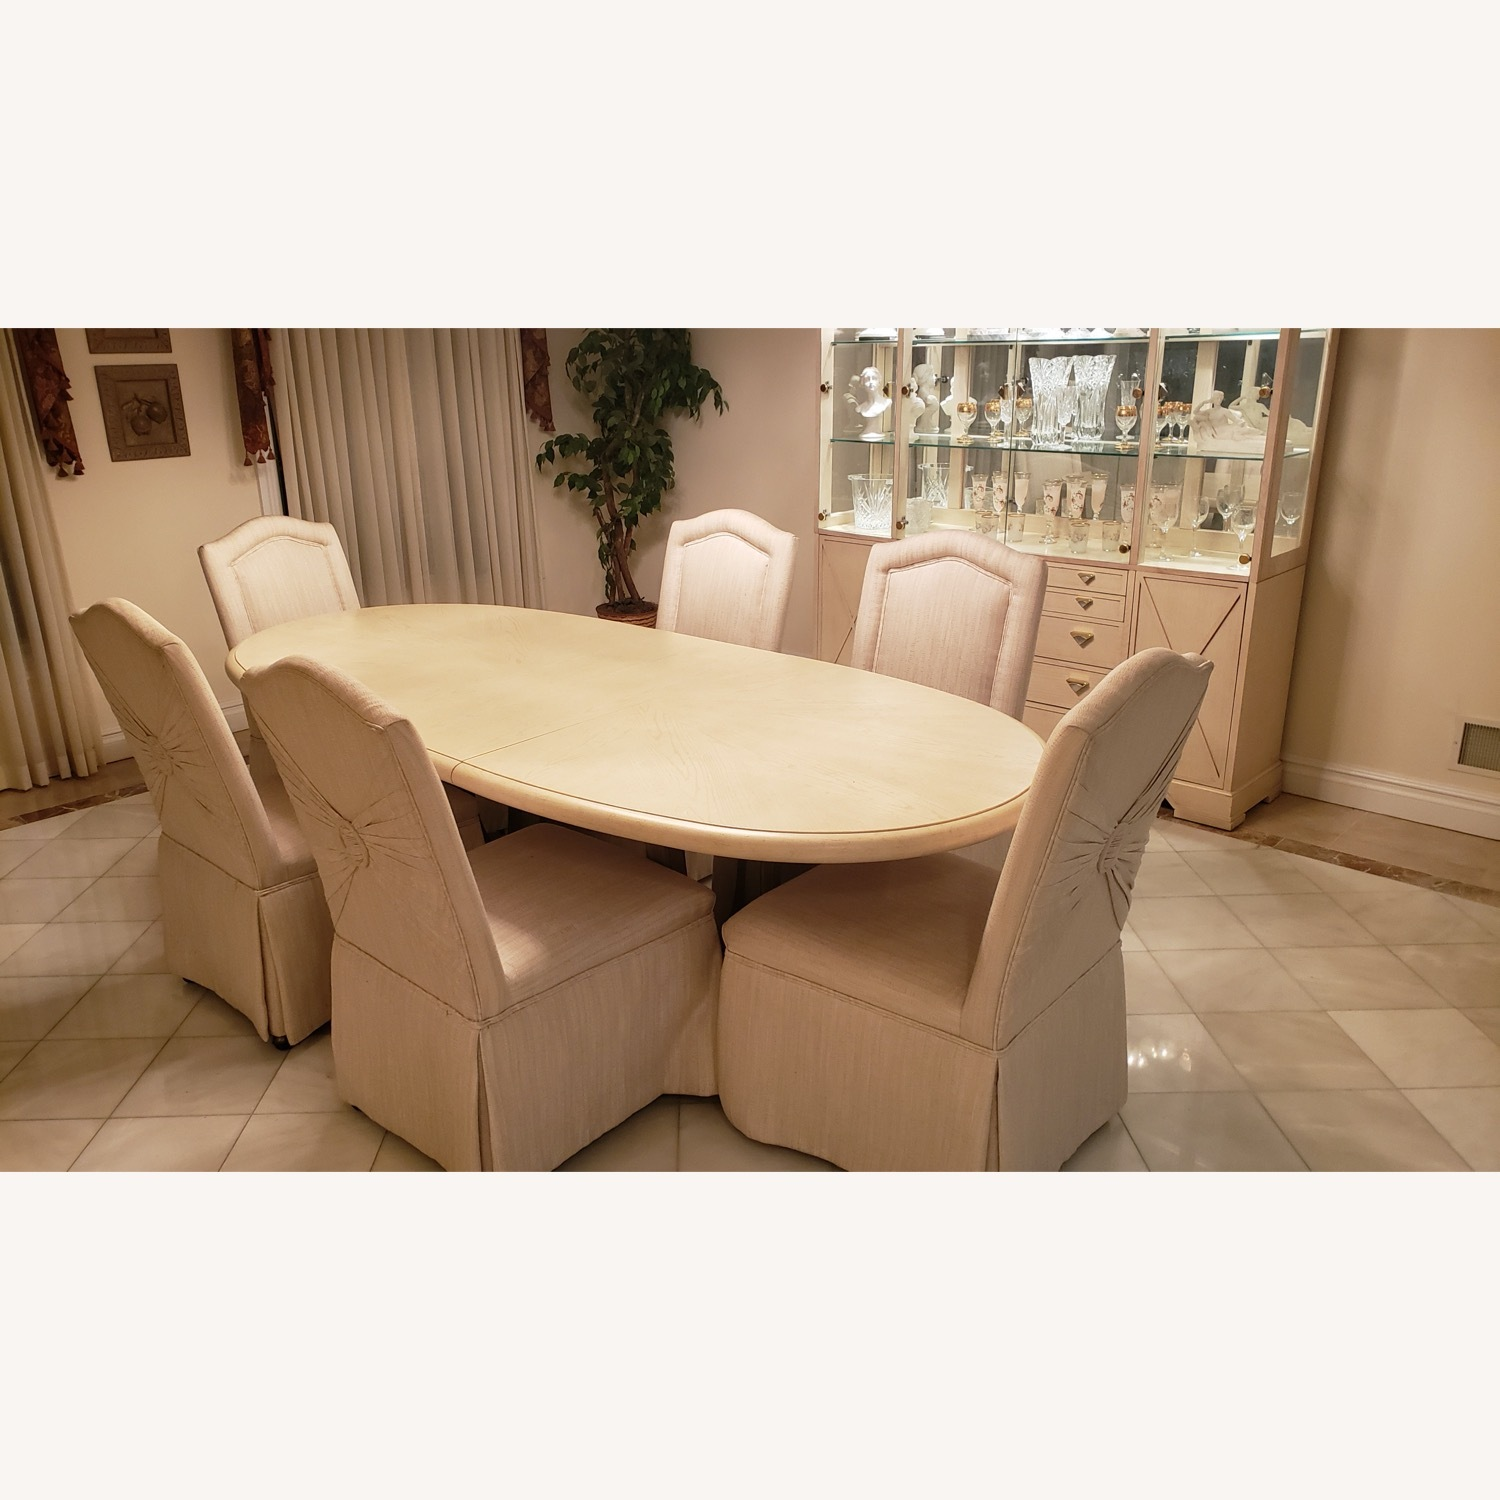 Drexel Heritage Table Set (6 chairs) - image-1